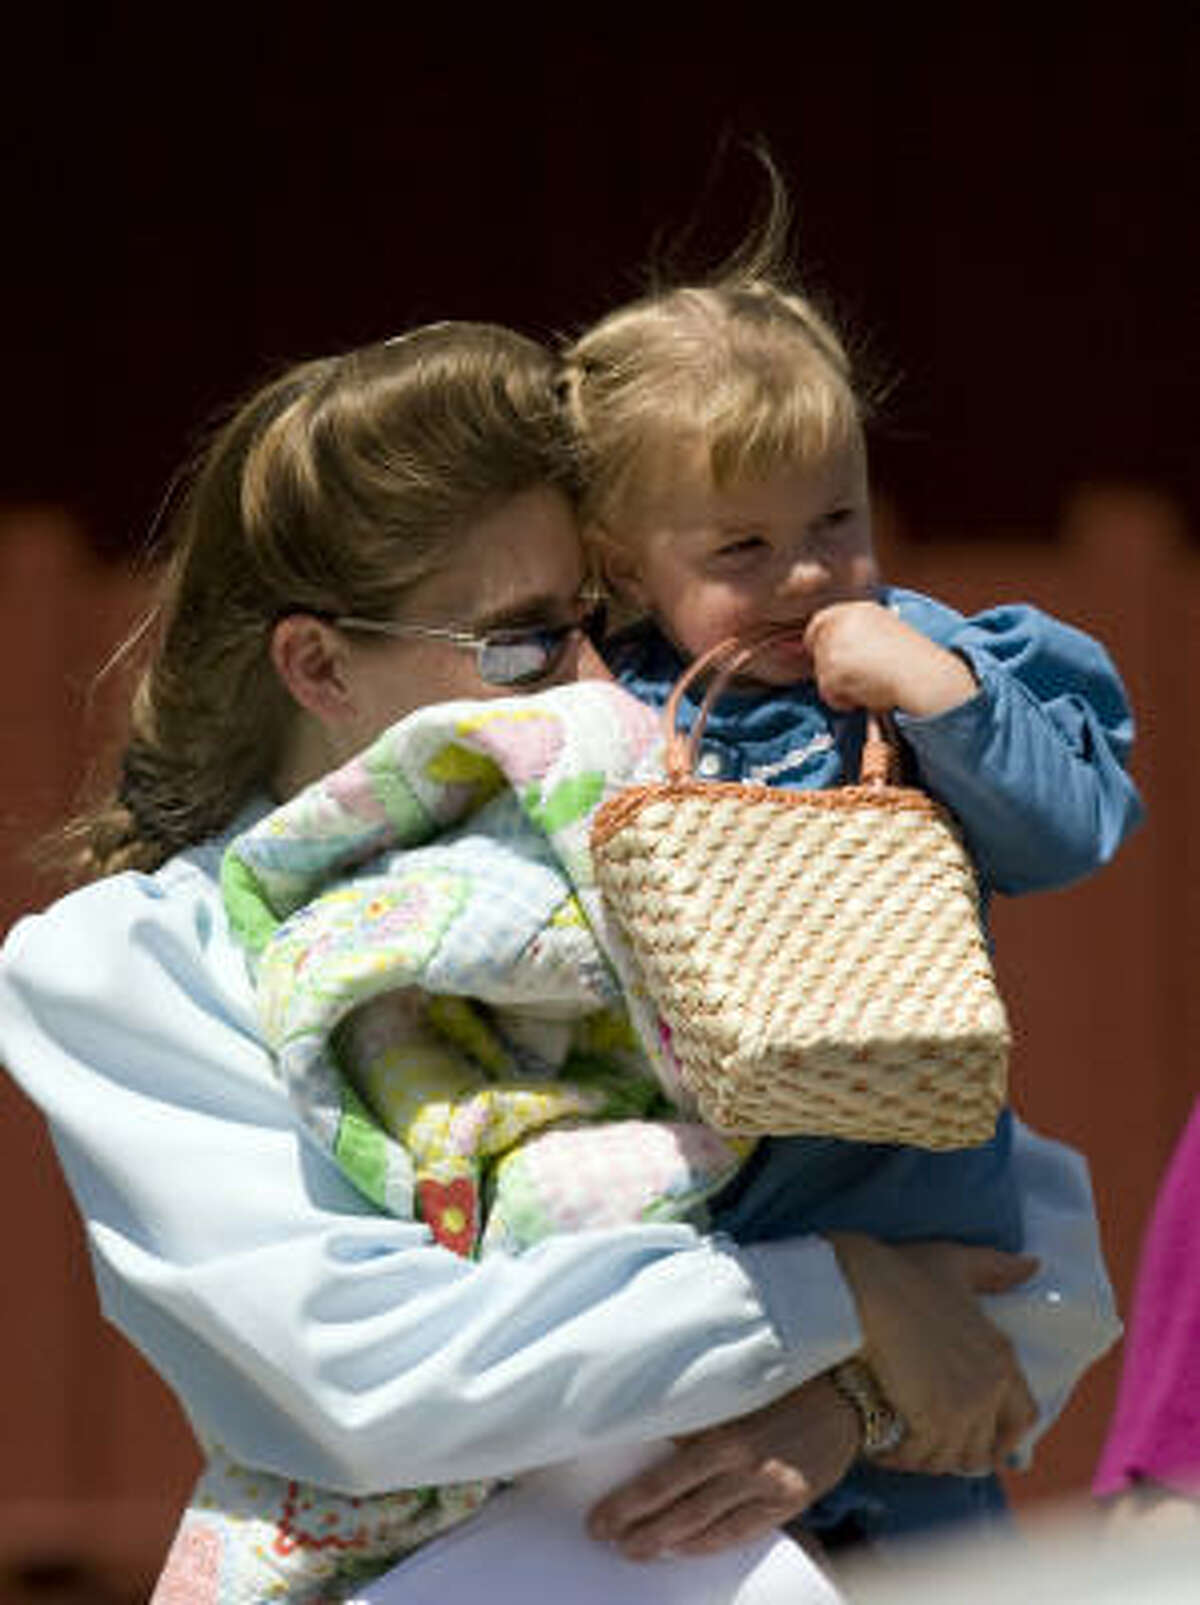 A mother from the Fundamentalist Church of Jesus Christ of Latter Day Saints reunites with her child at the Kidz Harbor facility in Liverpool, Texas, in June 2008. Two months earlier, CPS seized 439 children from the polygamist sect.